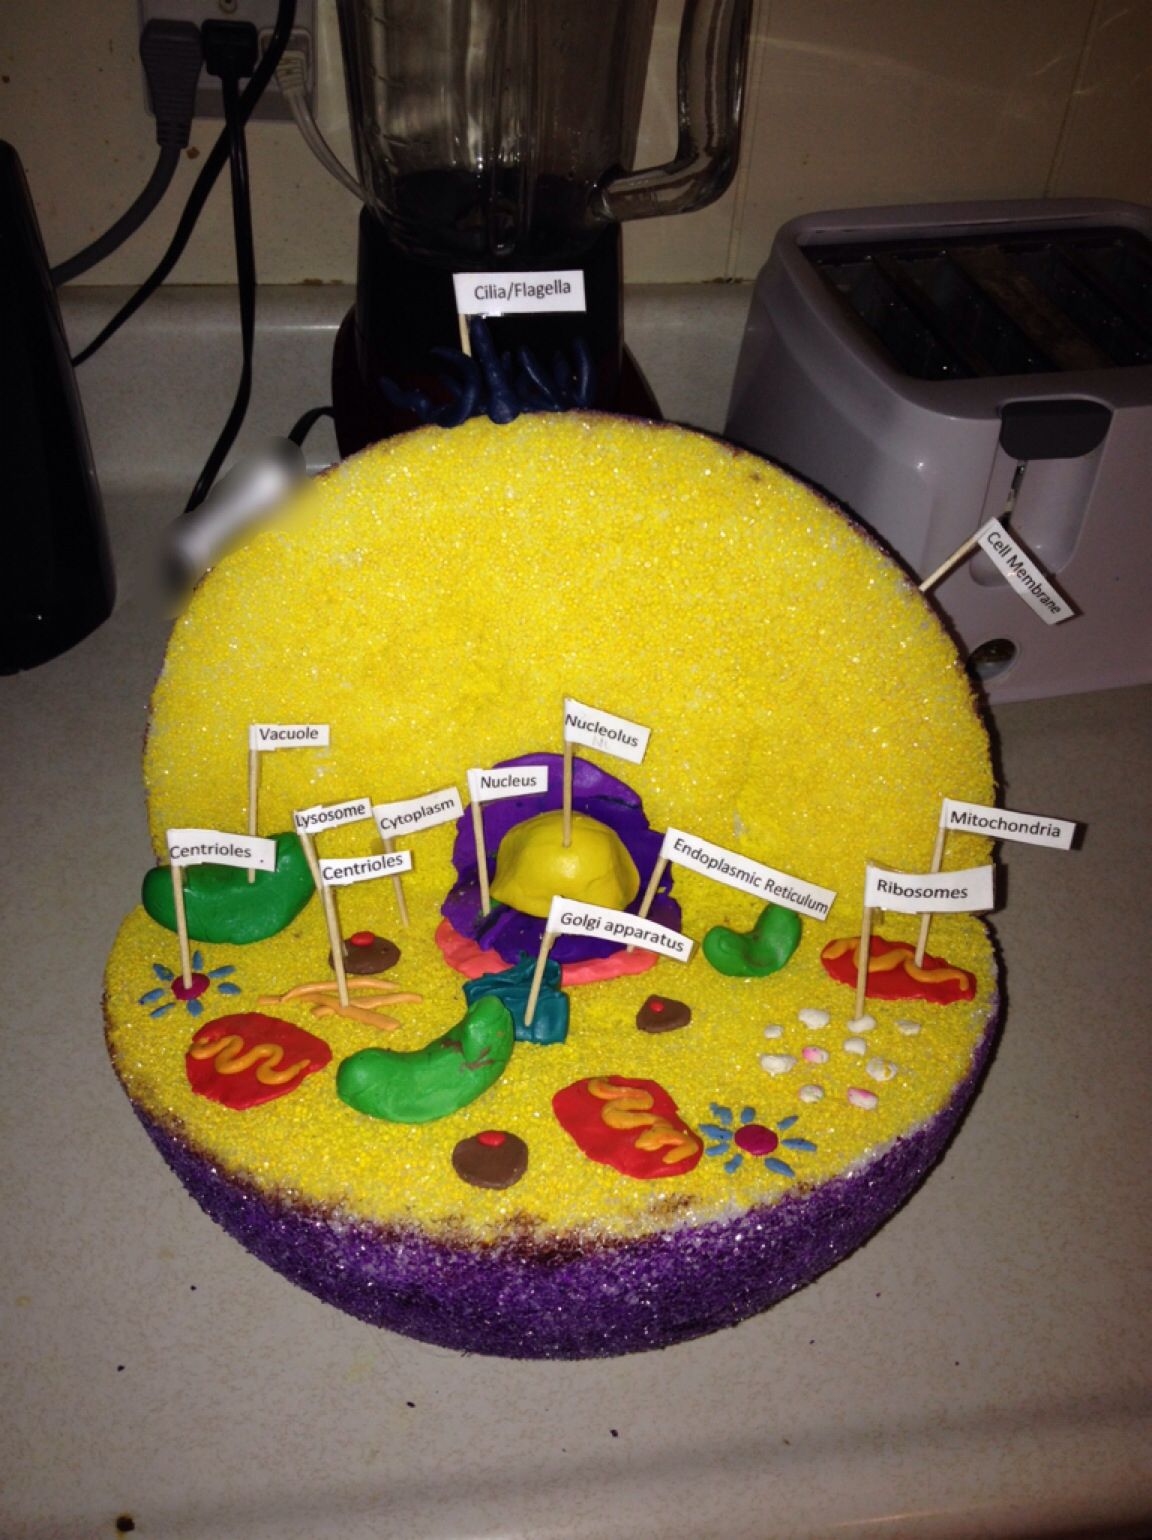 3d plant cell model project materials - 3d Plant Cell Model